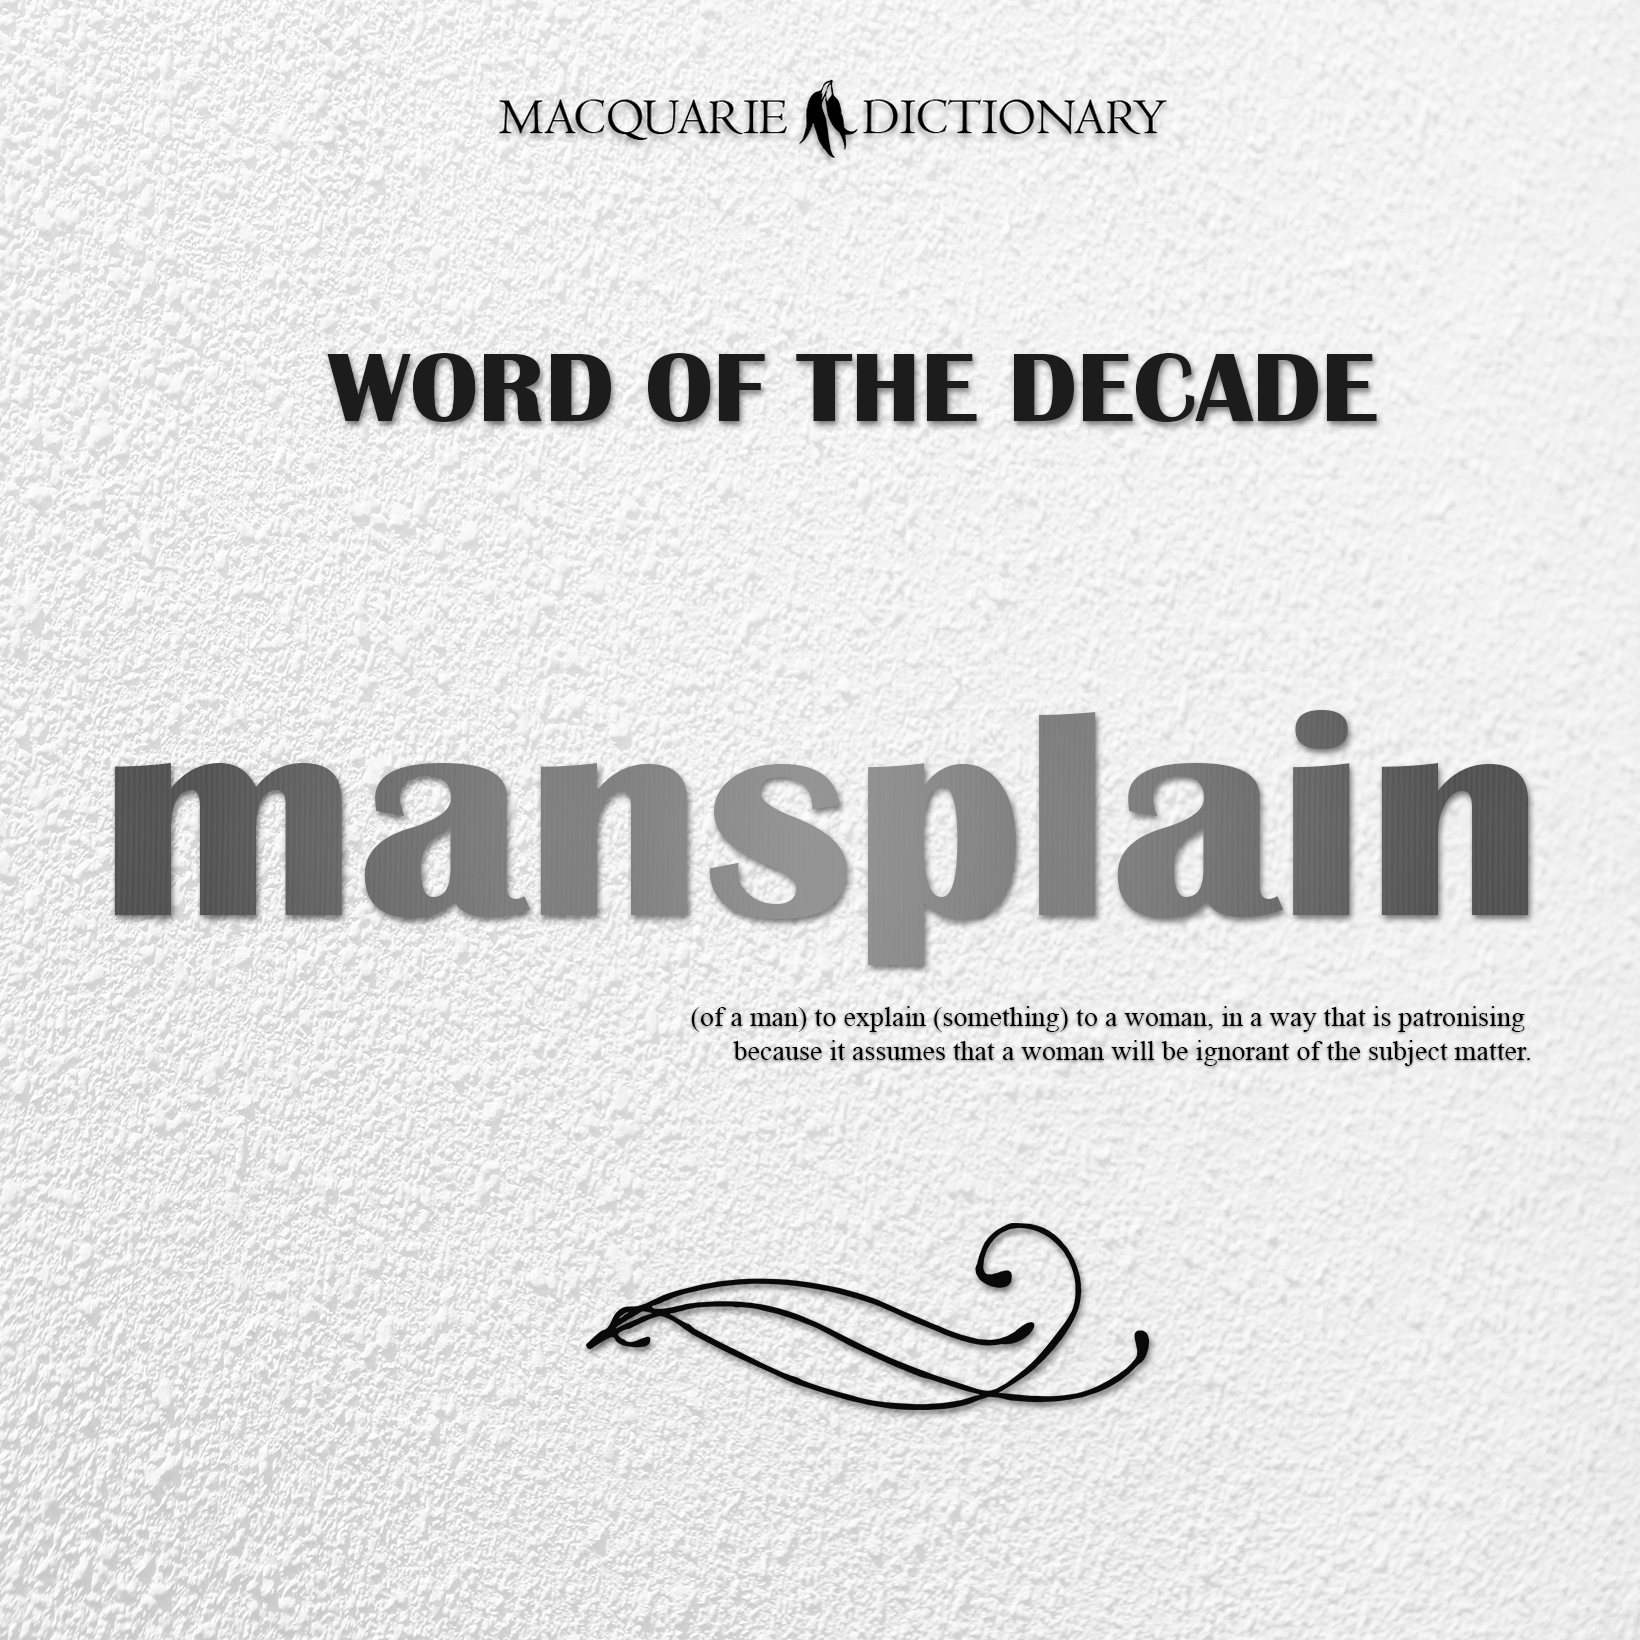 mansplain - (of a man) to explain (something) to a woman, in a way that is patronising because it assumes that a woman will be ignorant of the subject matter.